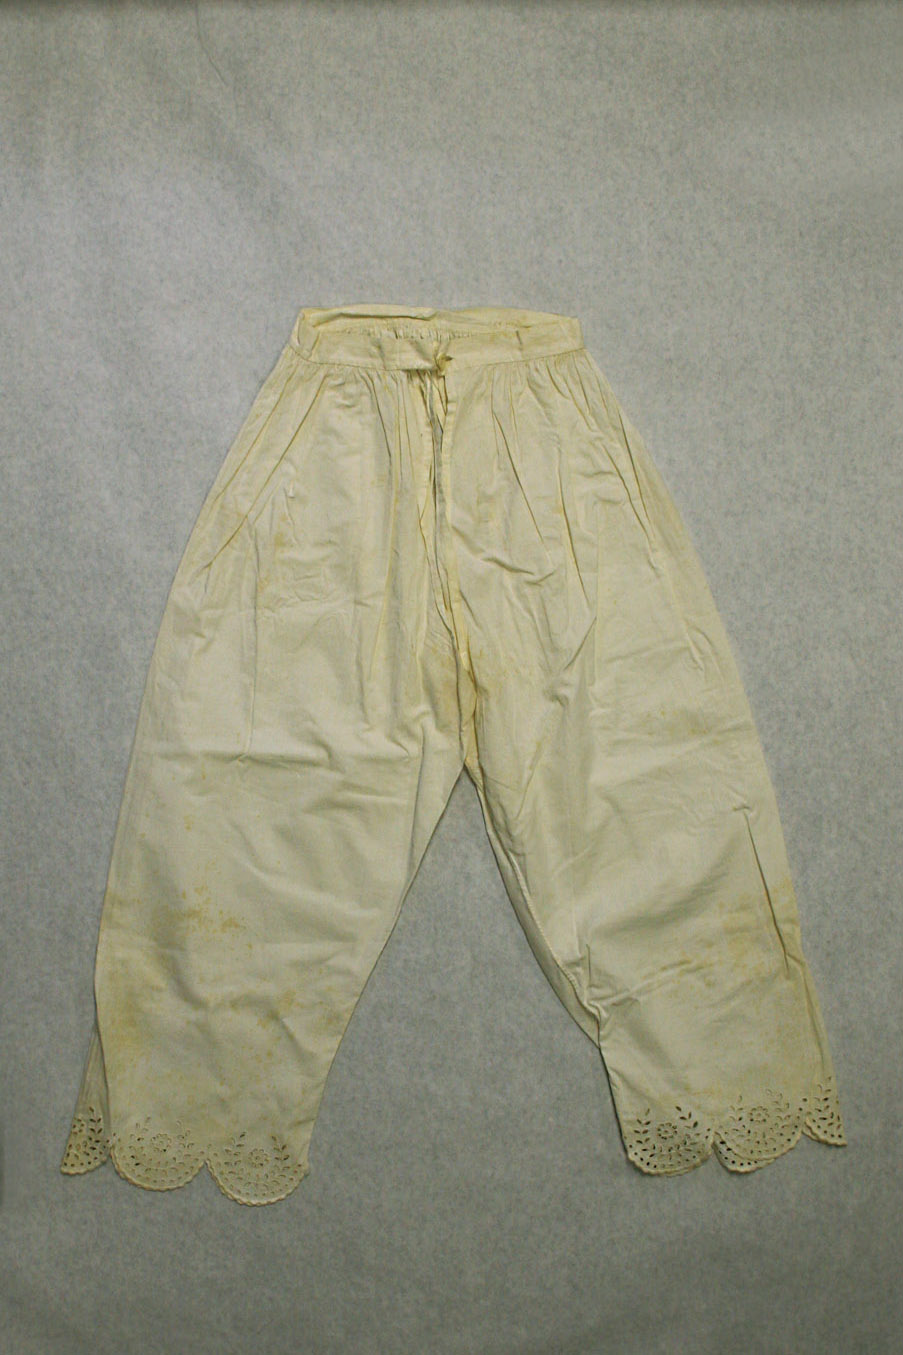 These pantaloons were likely worn beneath the dress Katharine Wright wore to the White House in 1909. Photograph: International Women's Air & Space Museum, Cleveland, OH.